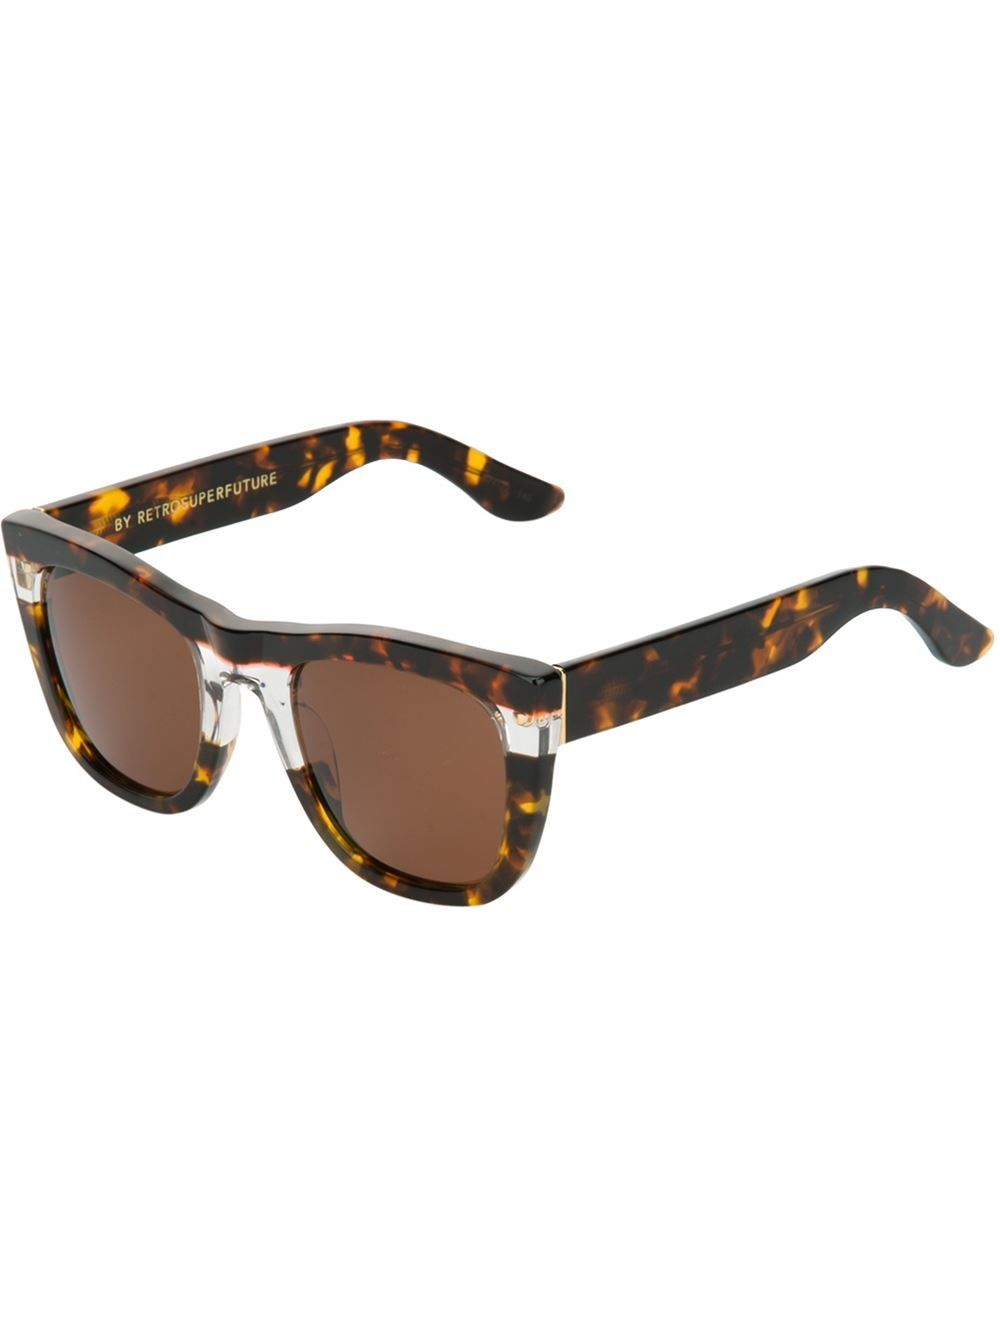 a677f8b75b4 Faux tortoise shell  Gals Strata DNI  sunglasses from Retro Super Future  featuring cat eye frames